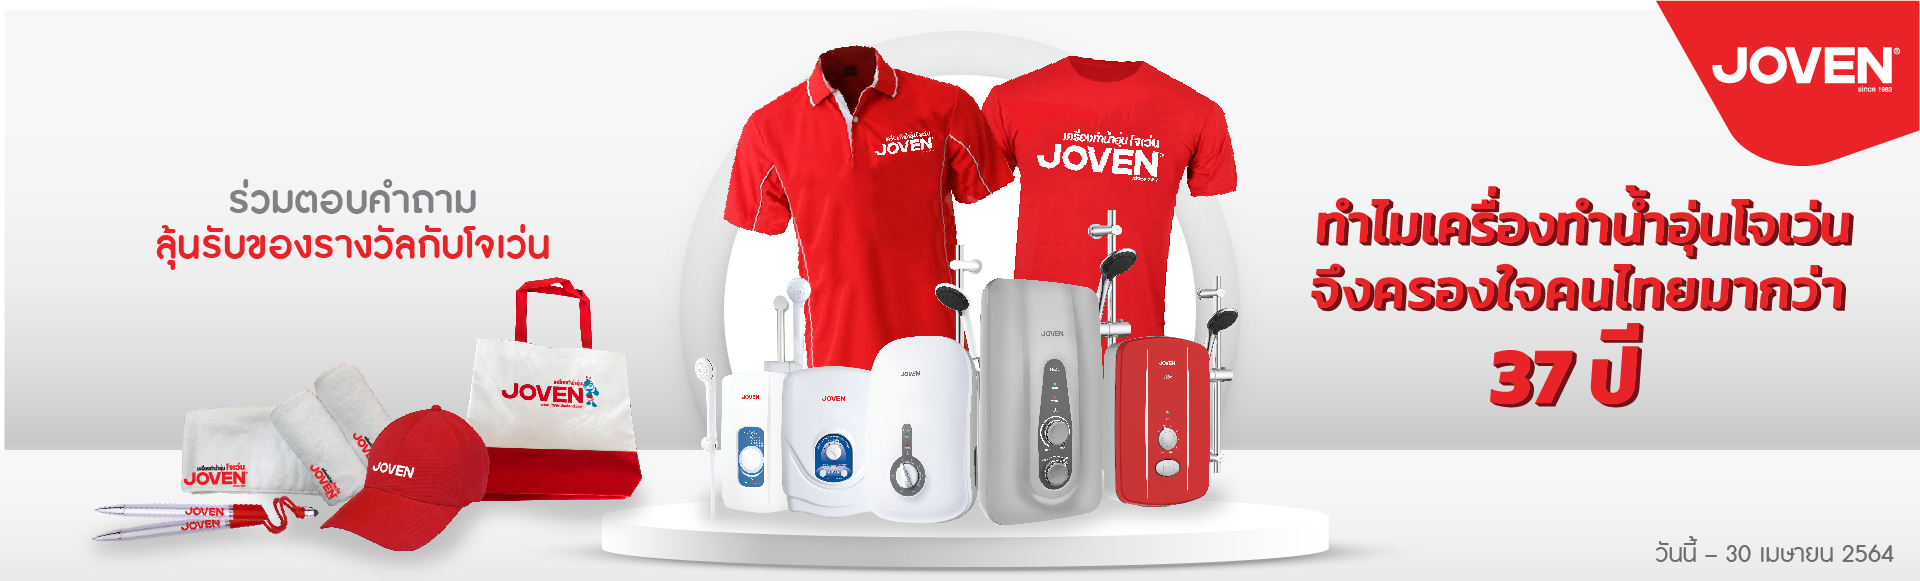 event joven 2021-01